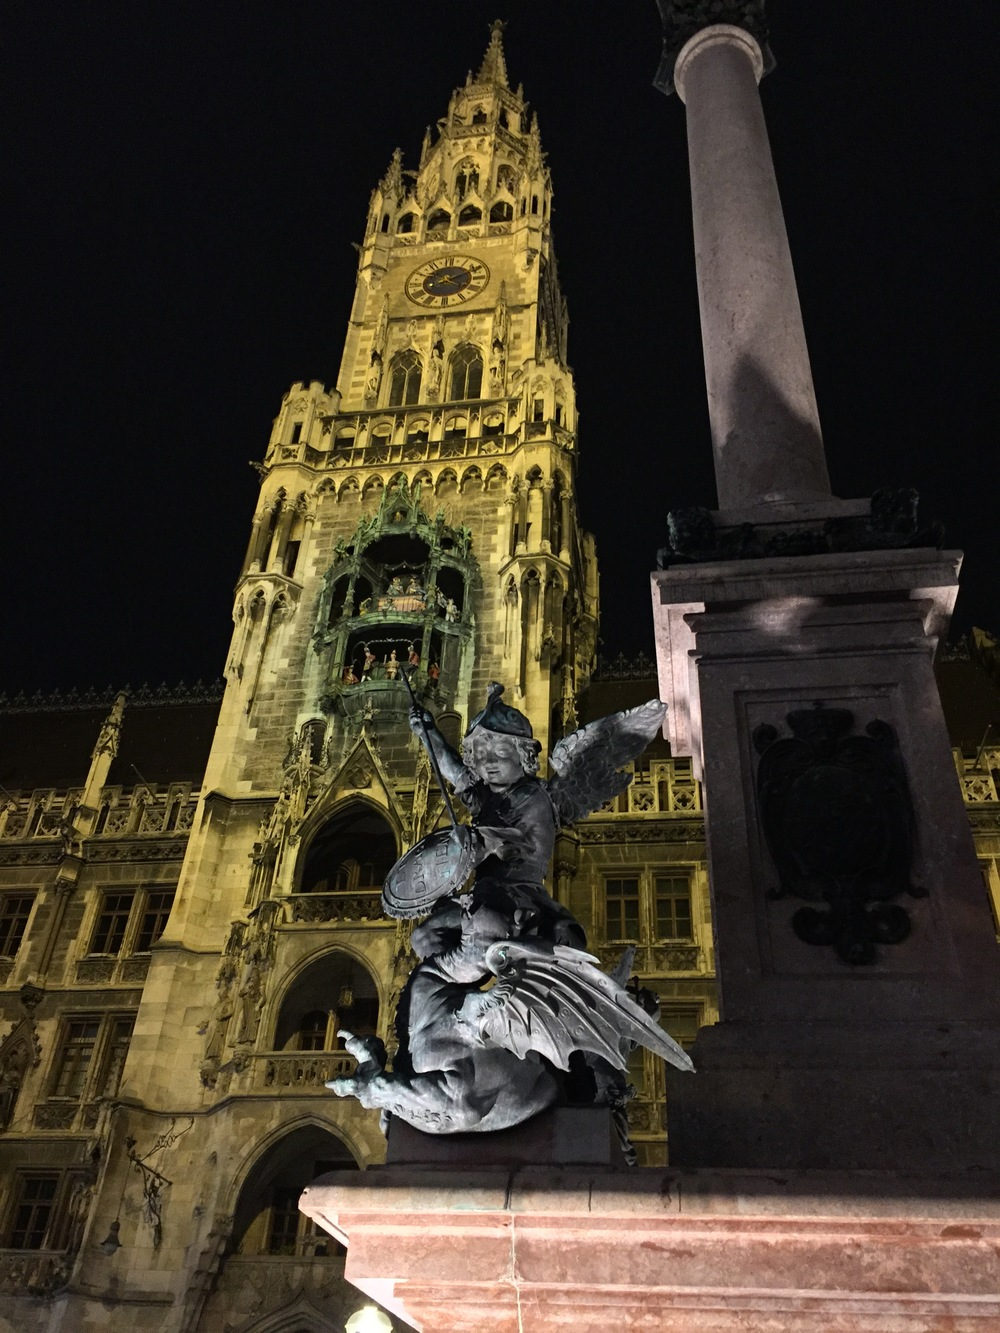 Marienplatz, on an evening stroll.